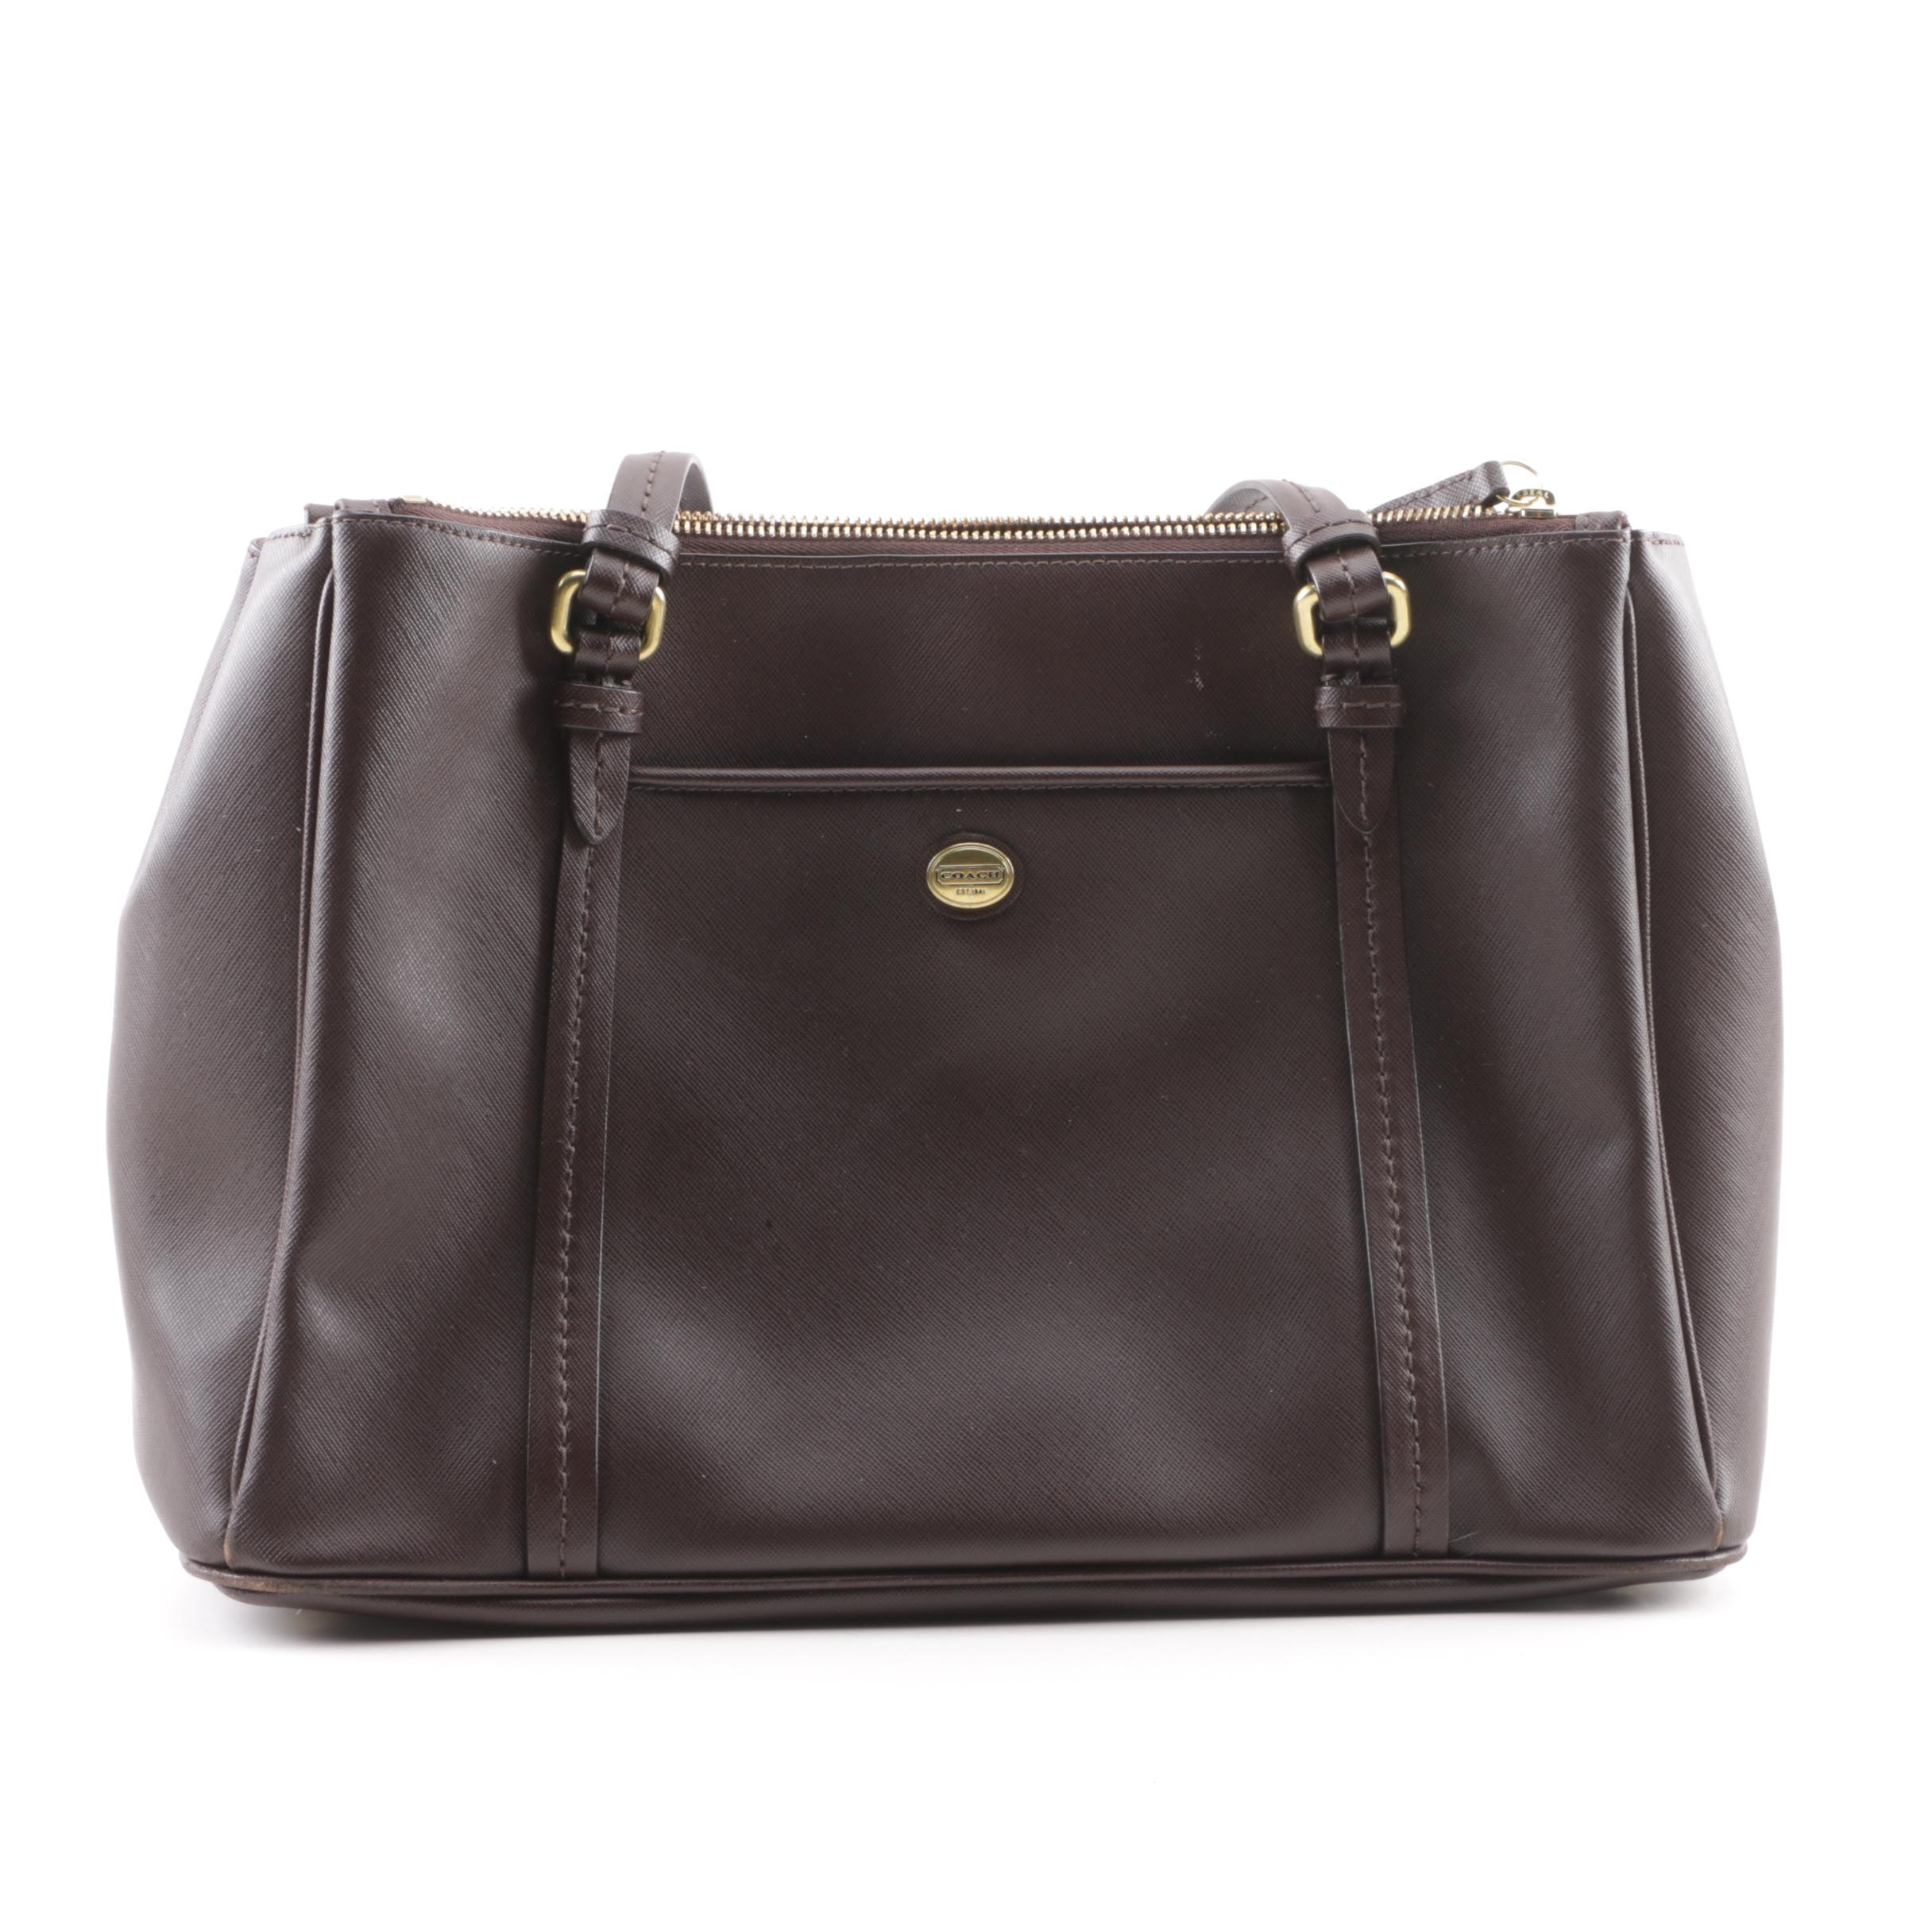 Coach Peyton Double Zip Brown Saffiano Leather Carryall Bag